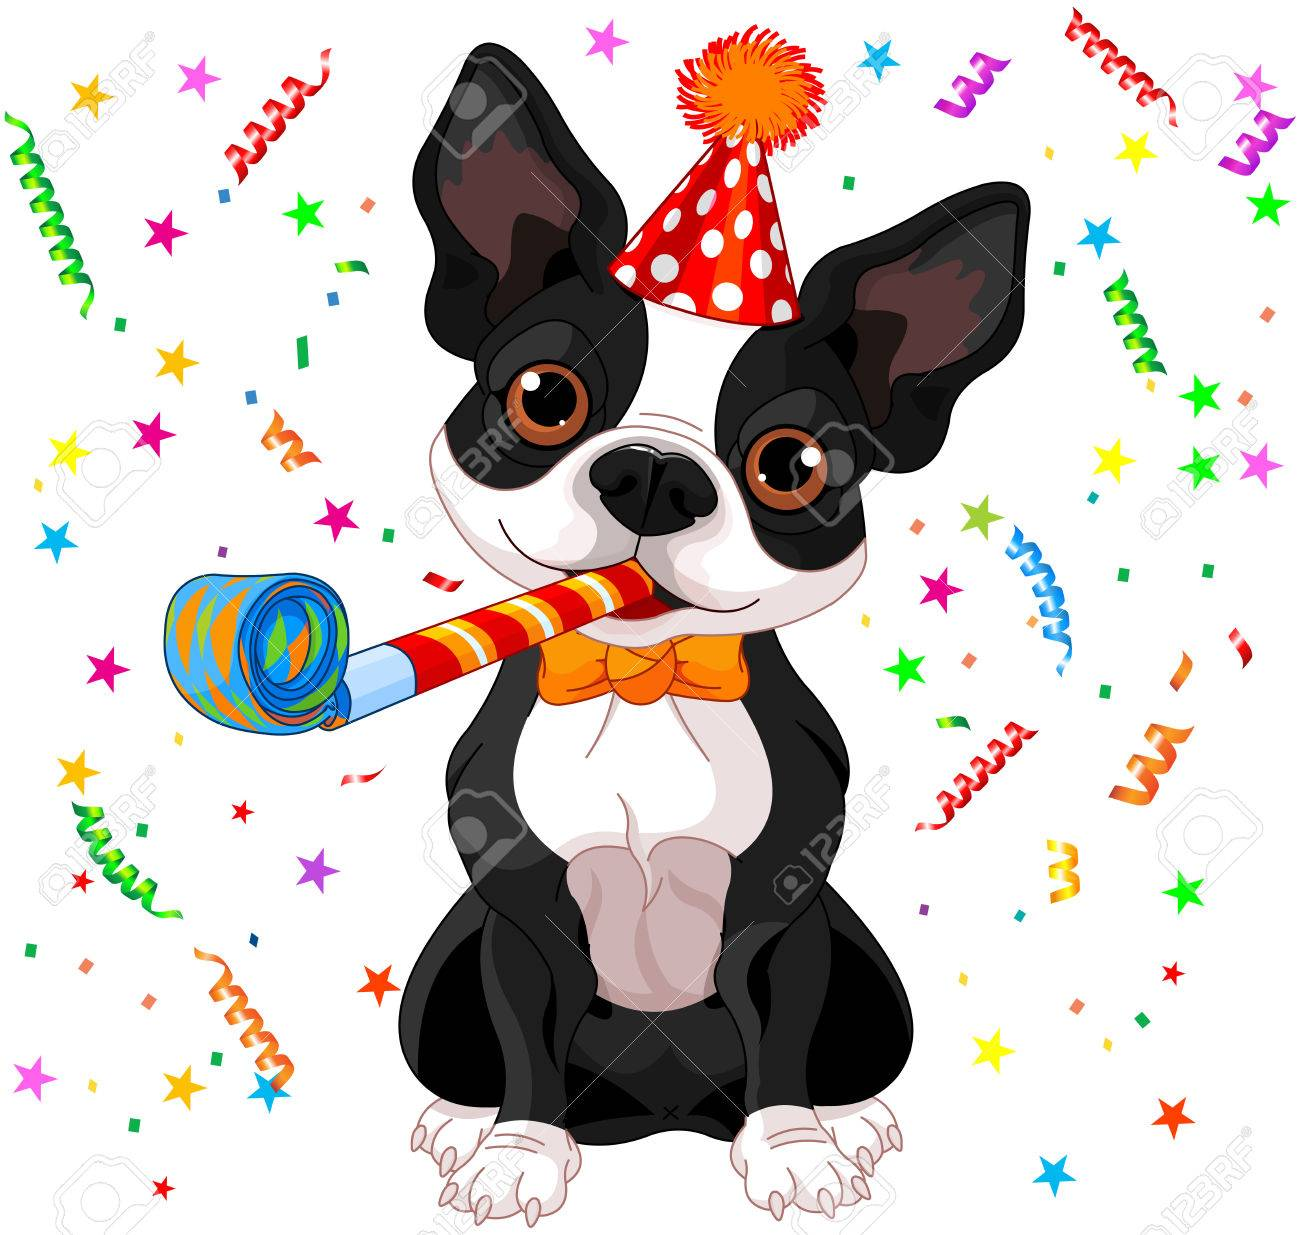 Qu'est-ce qu'un bon élevage? - Page 2 35588778-illustration-of-cute-boston-terrier-celebrating